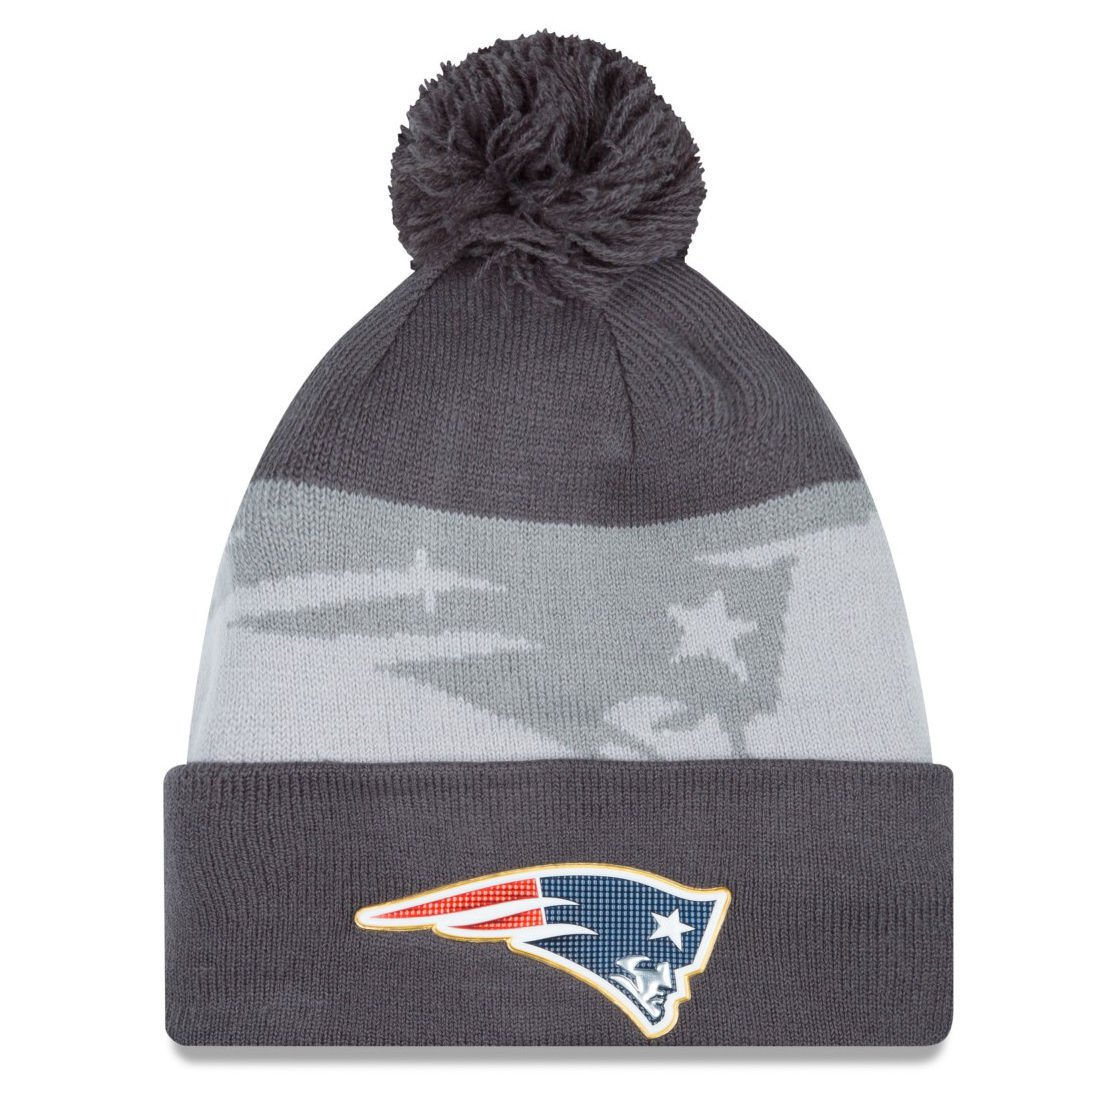 NEW ENGLAND PATRIOTS NFL NEW ERA GOLD COLLECTION BEANIE KNIT HAT CAP - GRAY